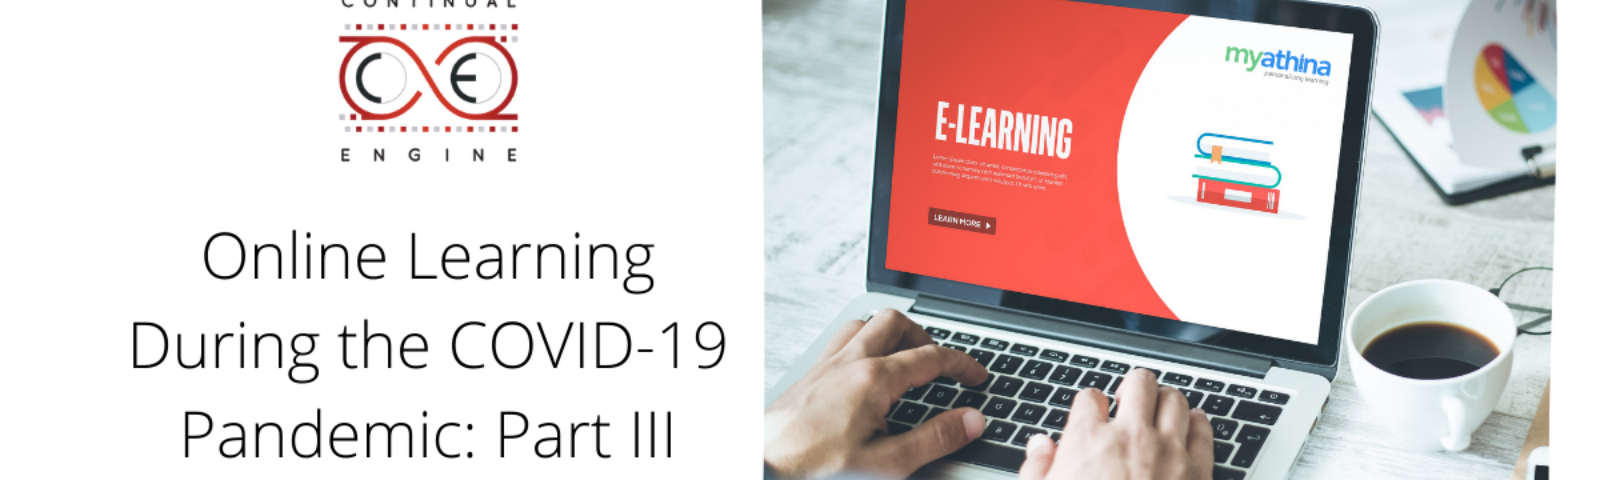 Online Learning During the COVID-19 Pandemic: Part III